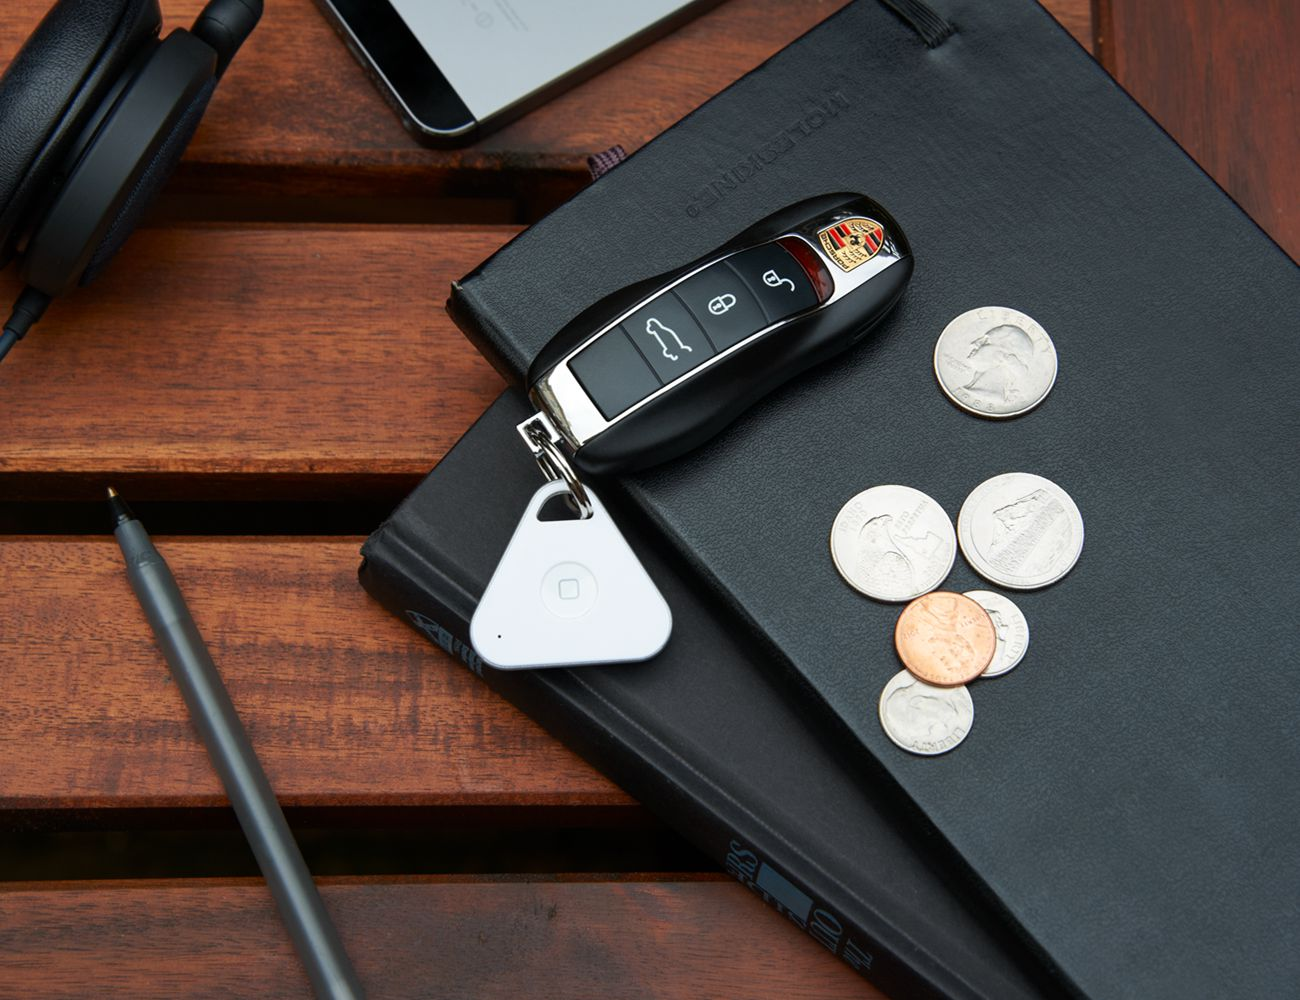 iHere Key Finder and Selfie Remote